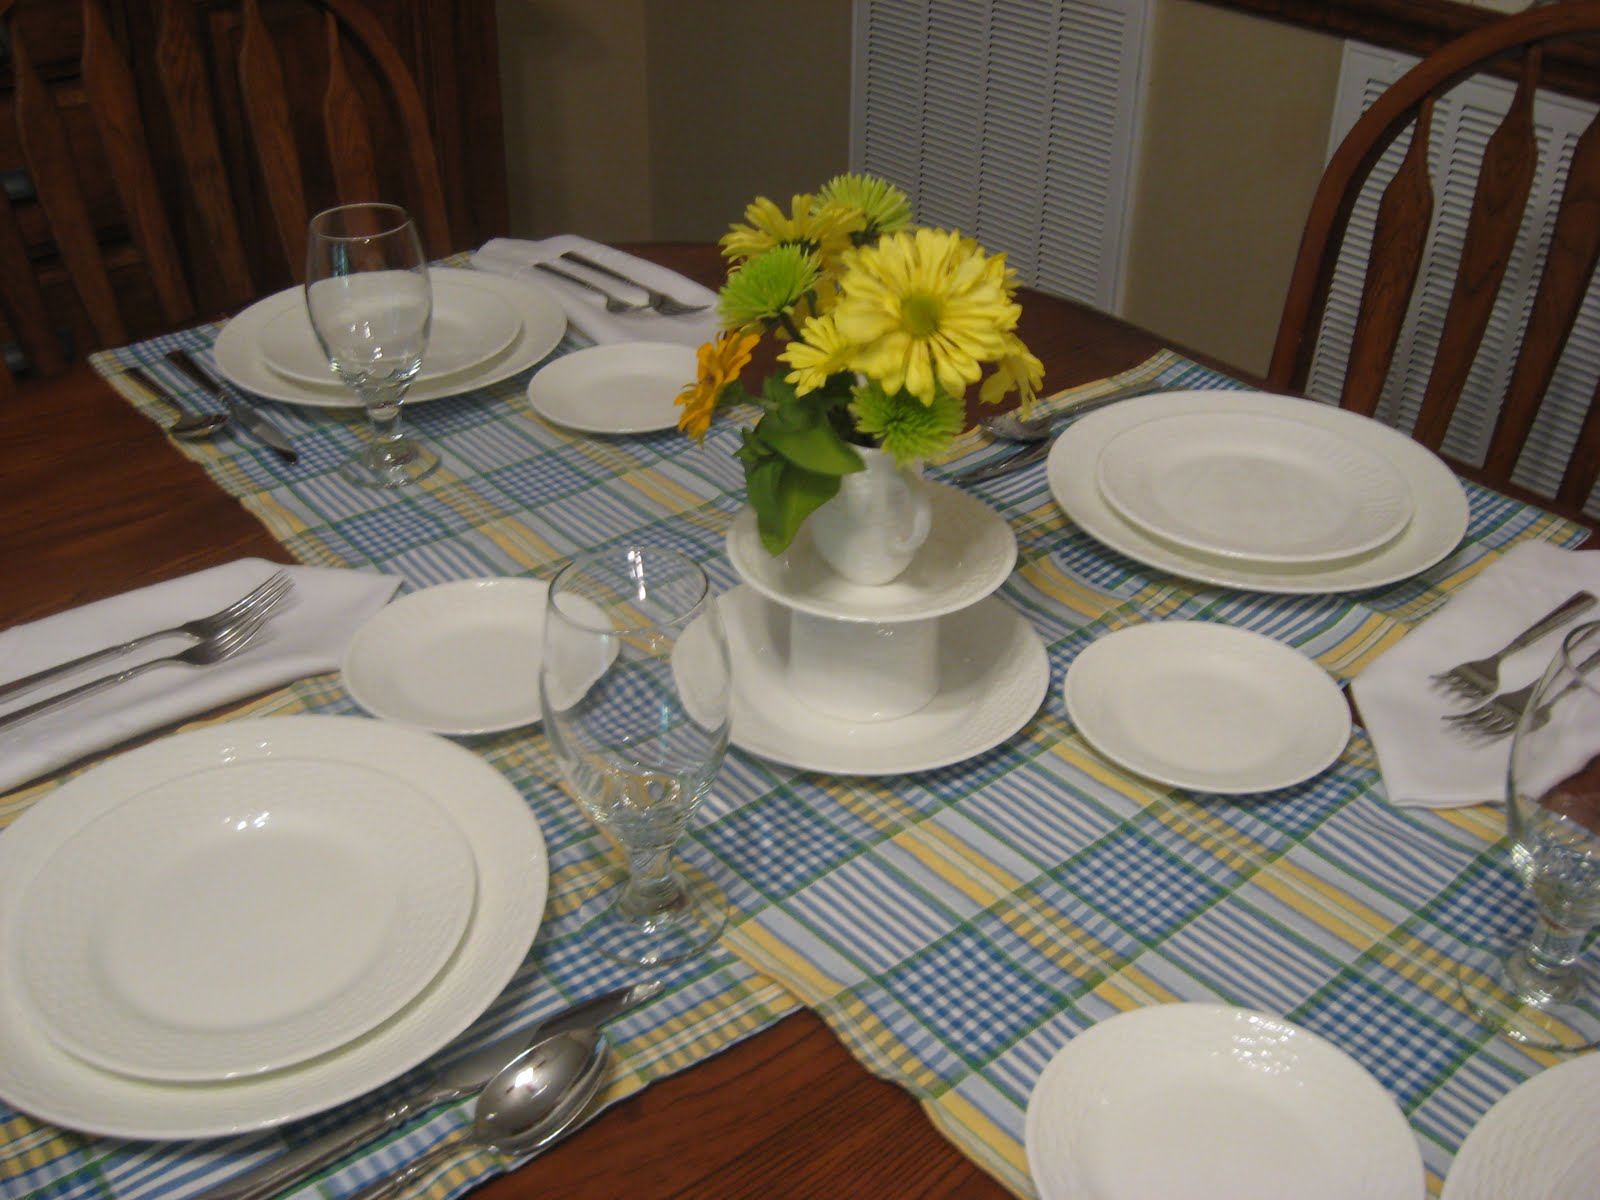 I then built a centerpiece using a salad plate tea cup placed upside down a bread plate and a creamer in my everyday pattern Wedgwood\u0027s Nantucket Basket. & Busy at Home: Waverly Valley Plaid \u0026 Nantucket Basket